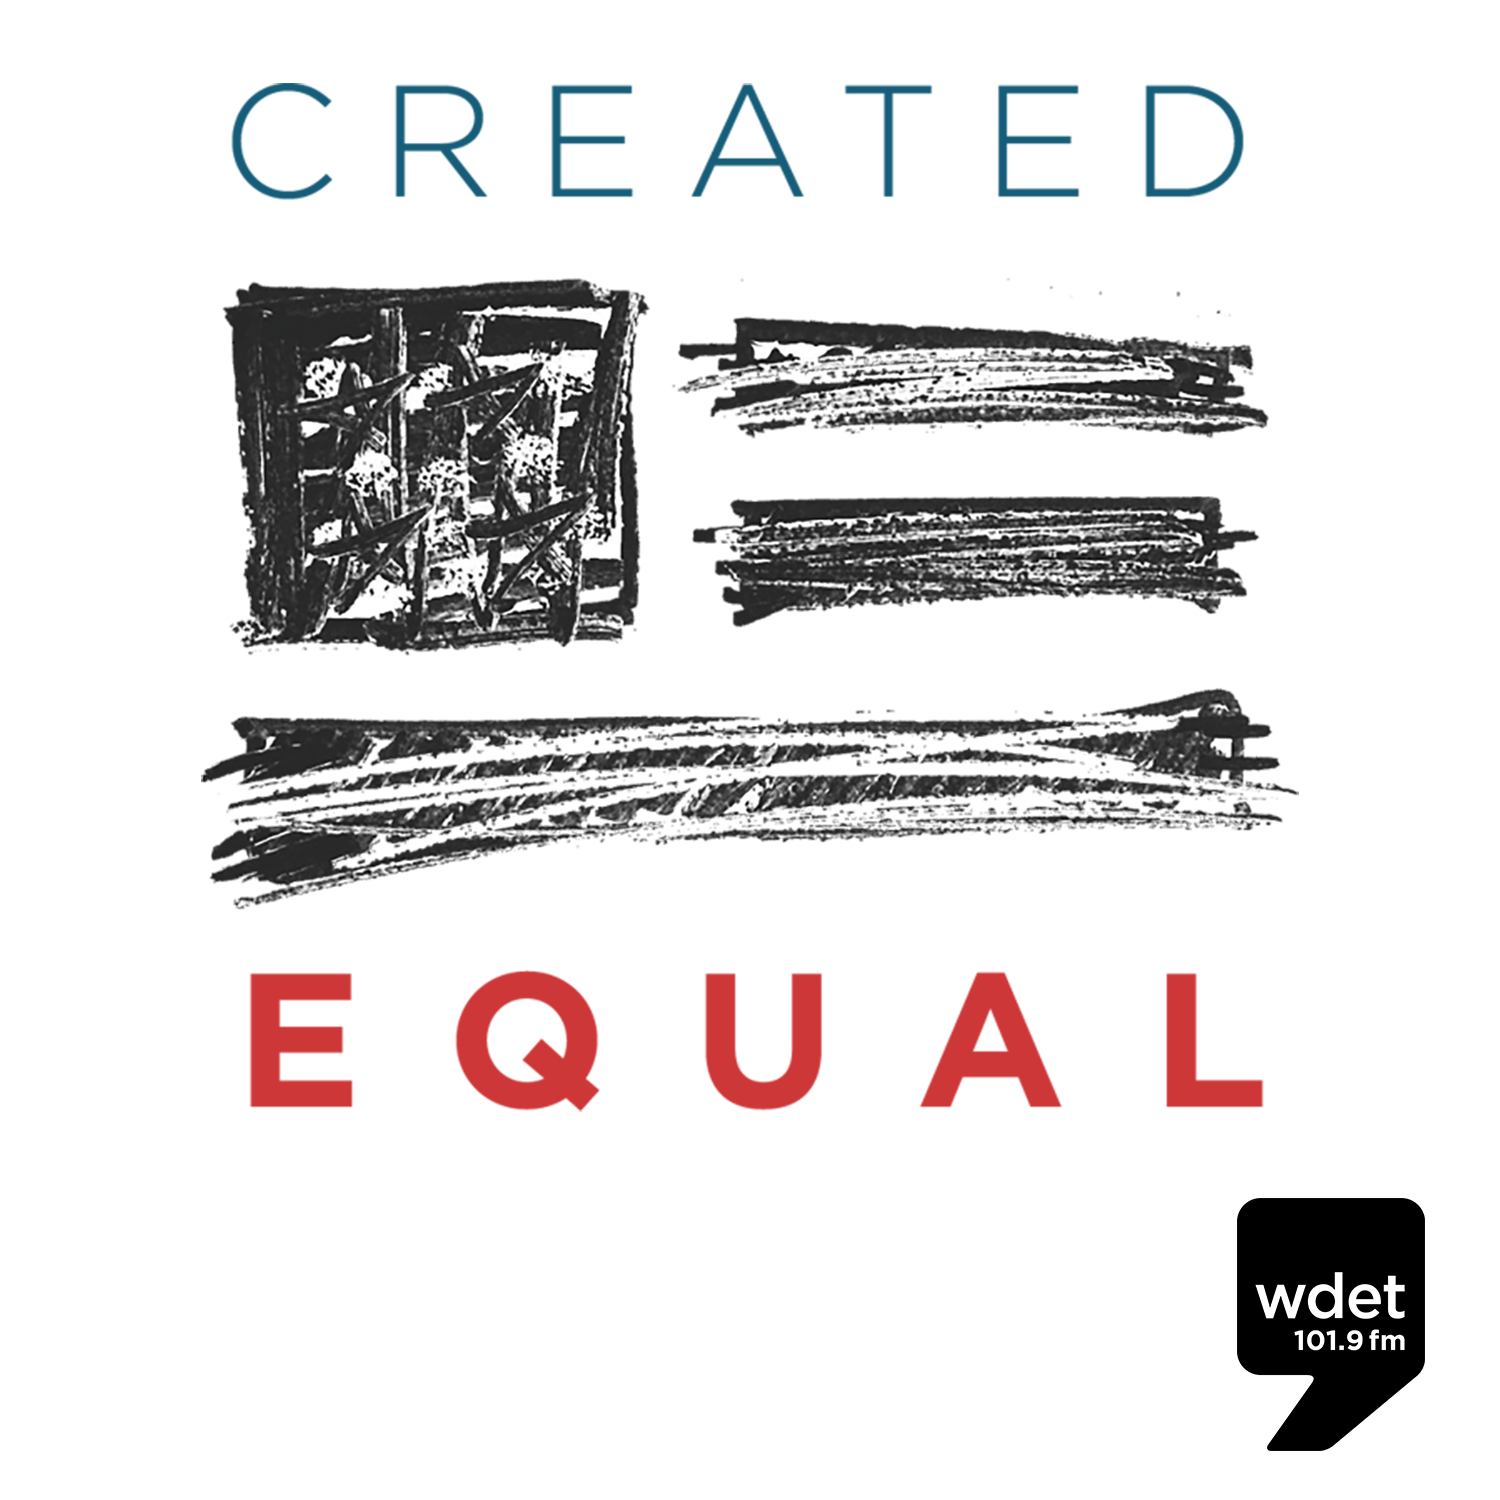 Created by equal